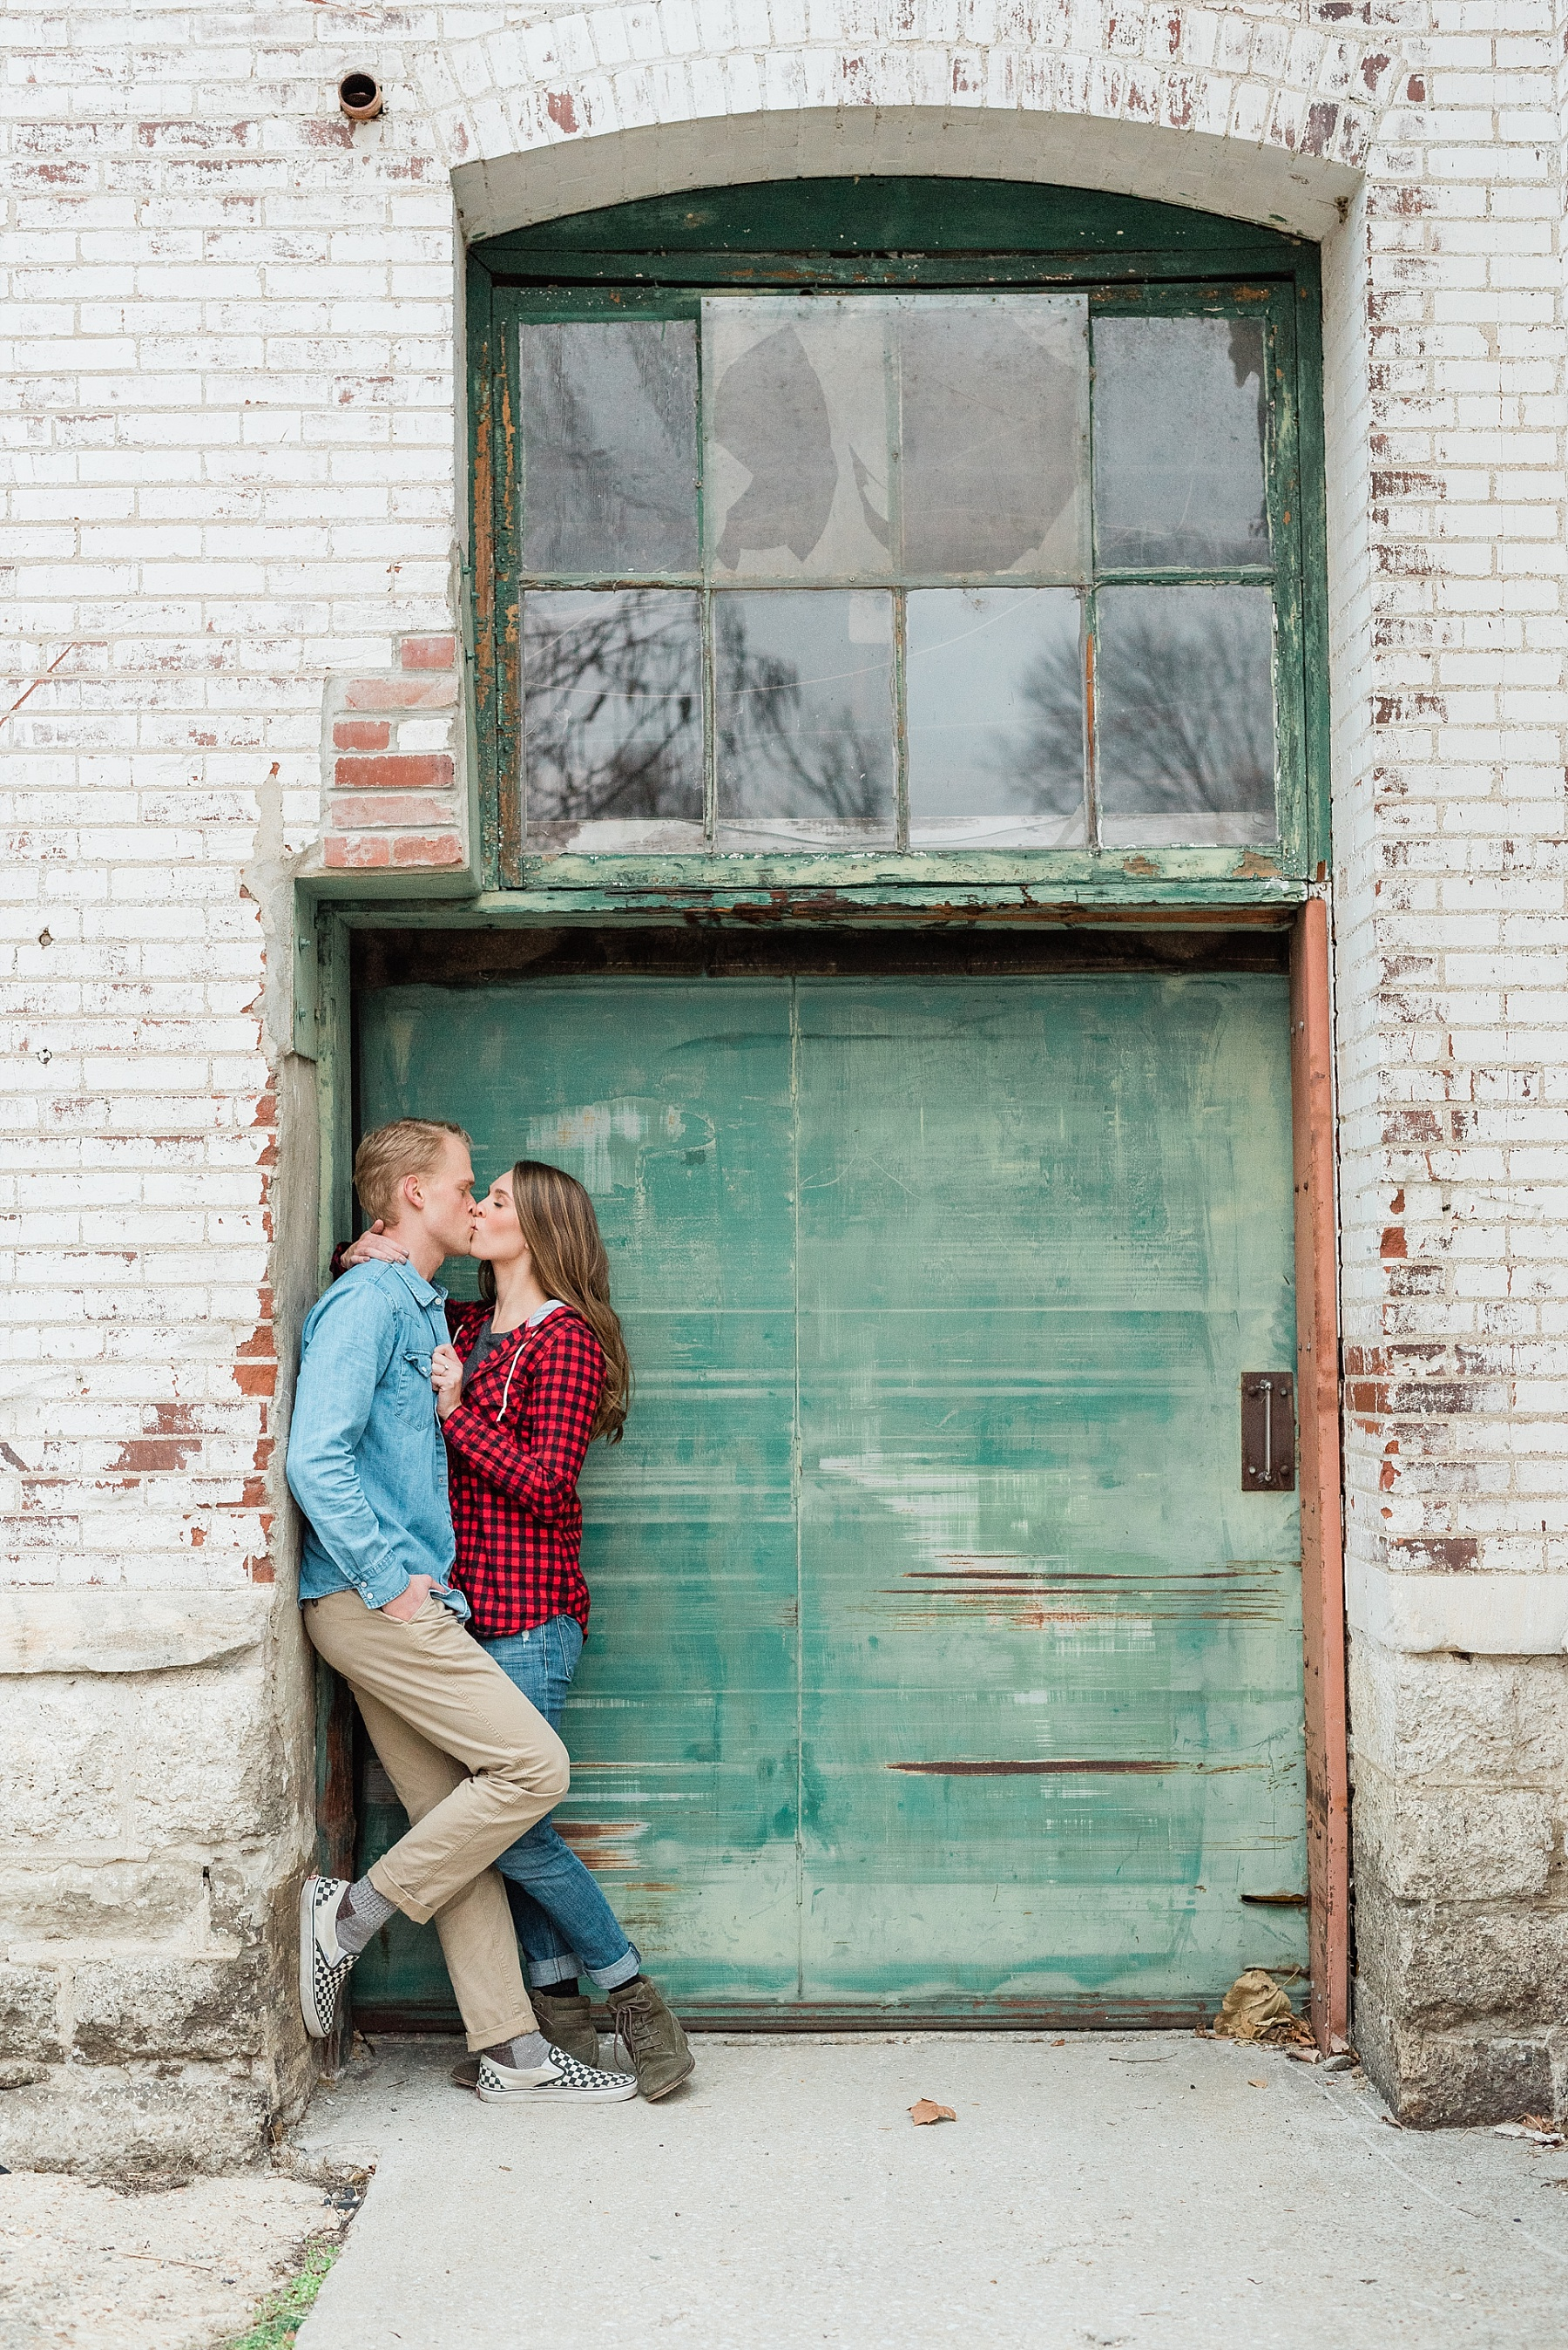 Downtown Jefferson City Engagement Session in Winter at Old Shoe Factory by Kelsi Kliethermes Photography Kansas City Missouri Wedding Photographer_0016.jpg